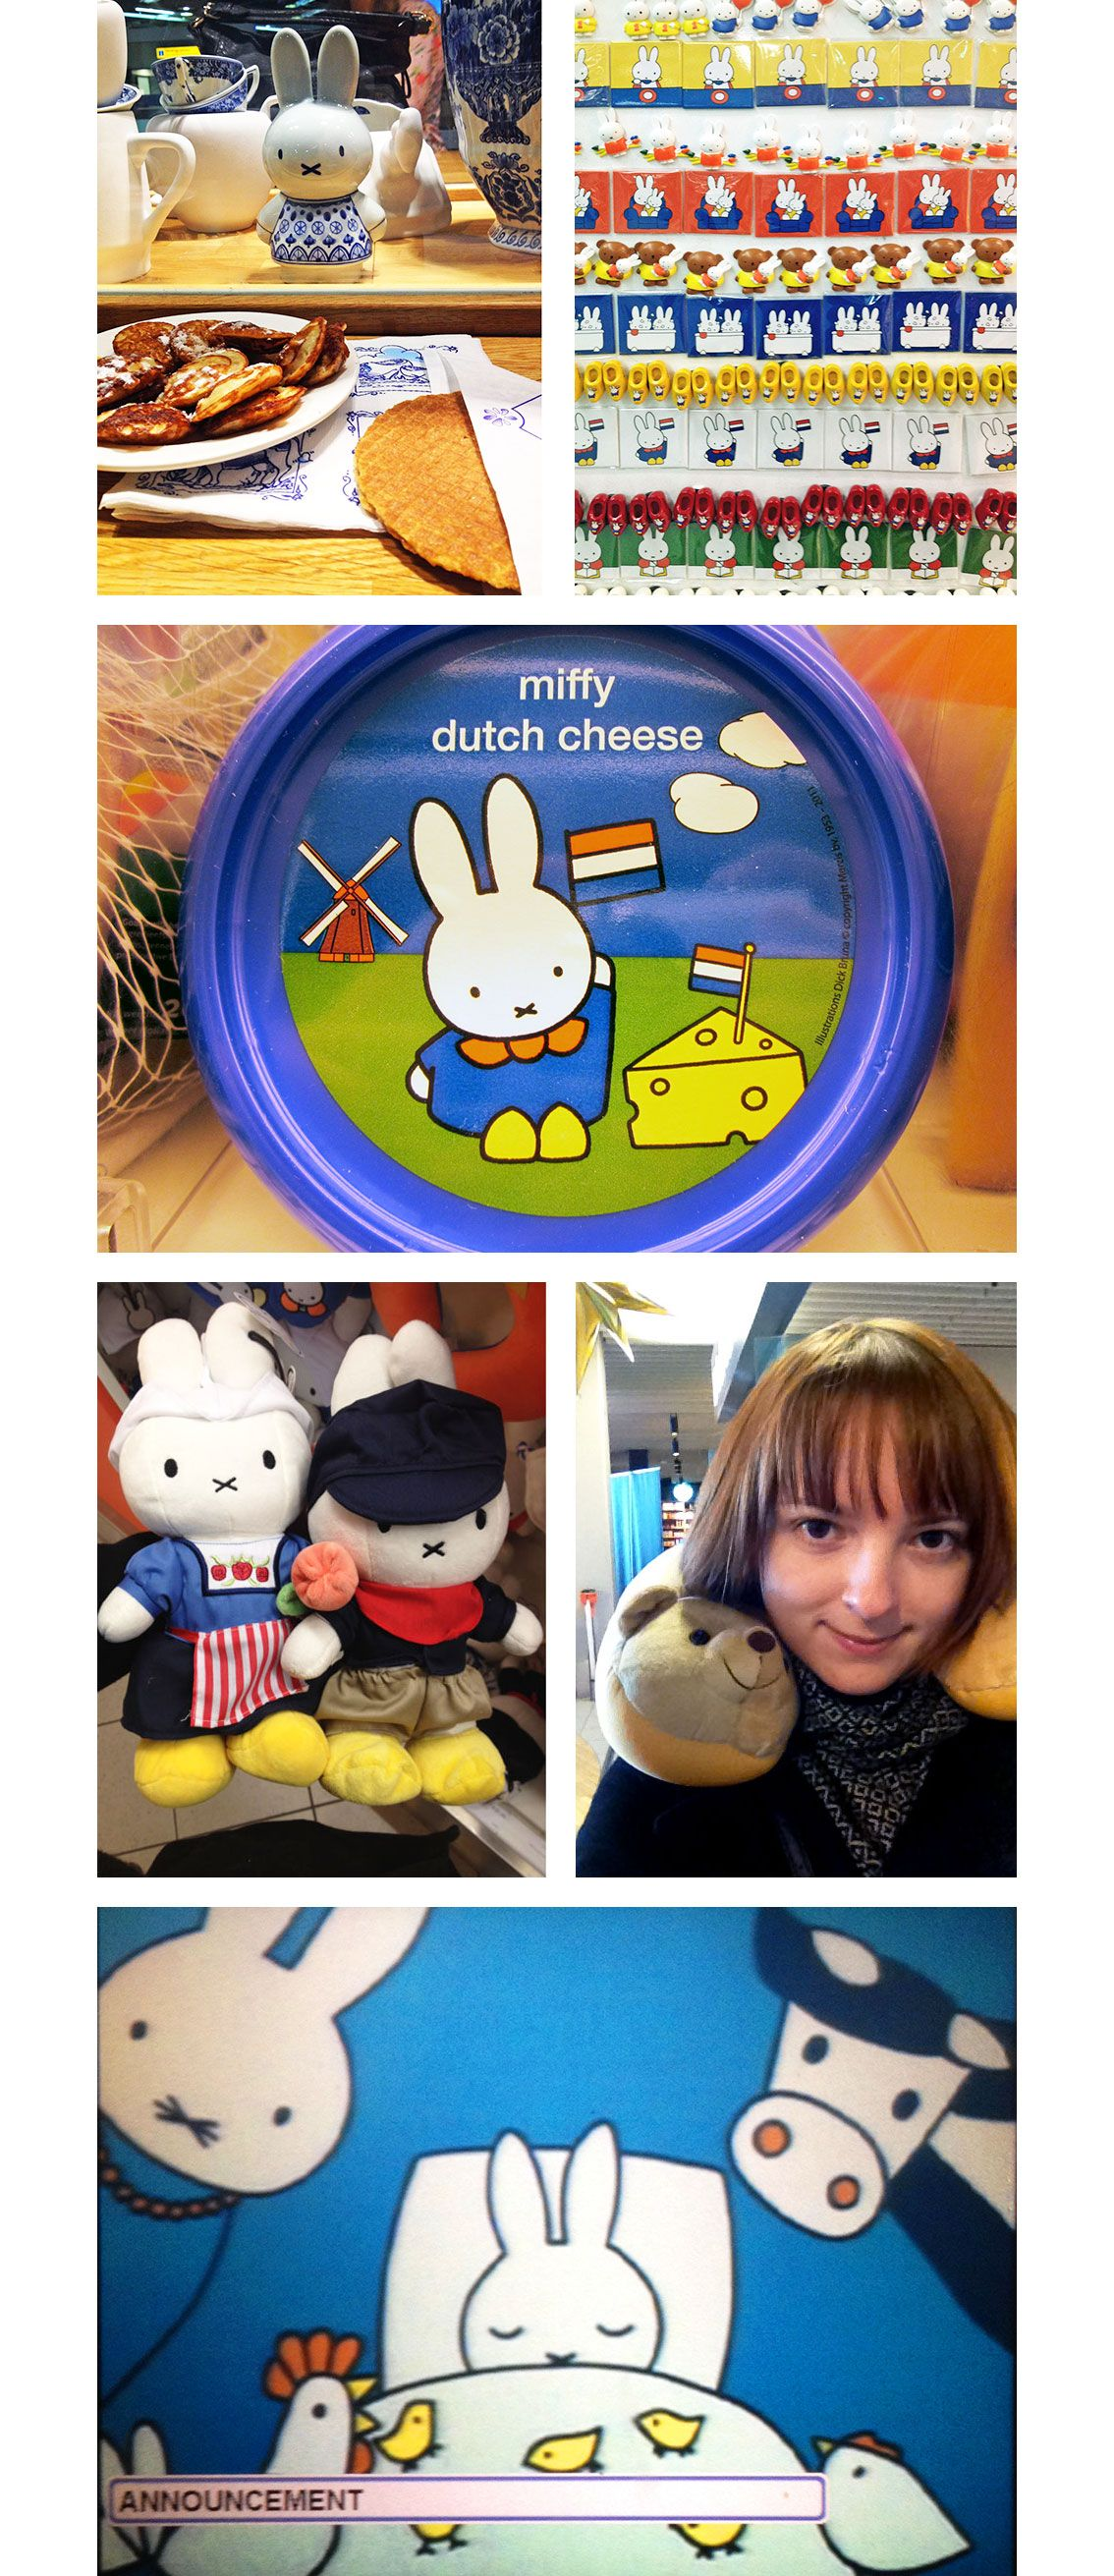 A Miffy fan's guide to Schiphol Airport and KLM